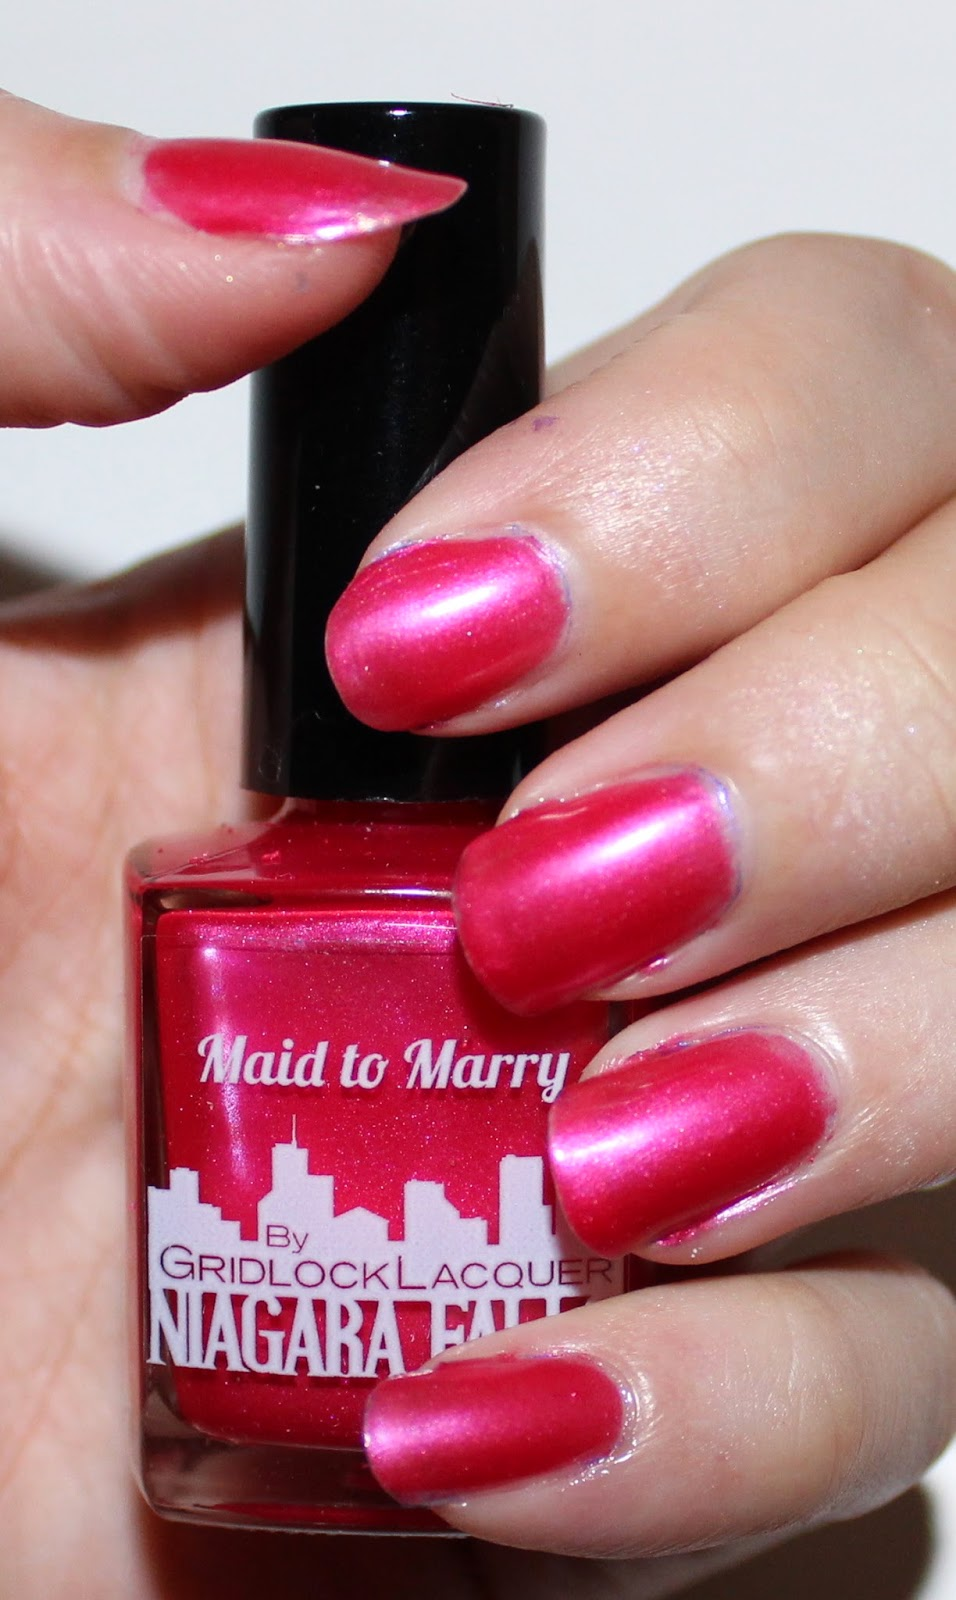 Gridlock Lacquer Maid to Marry